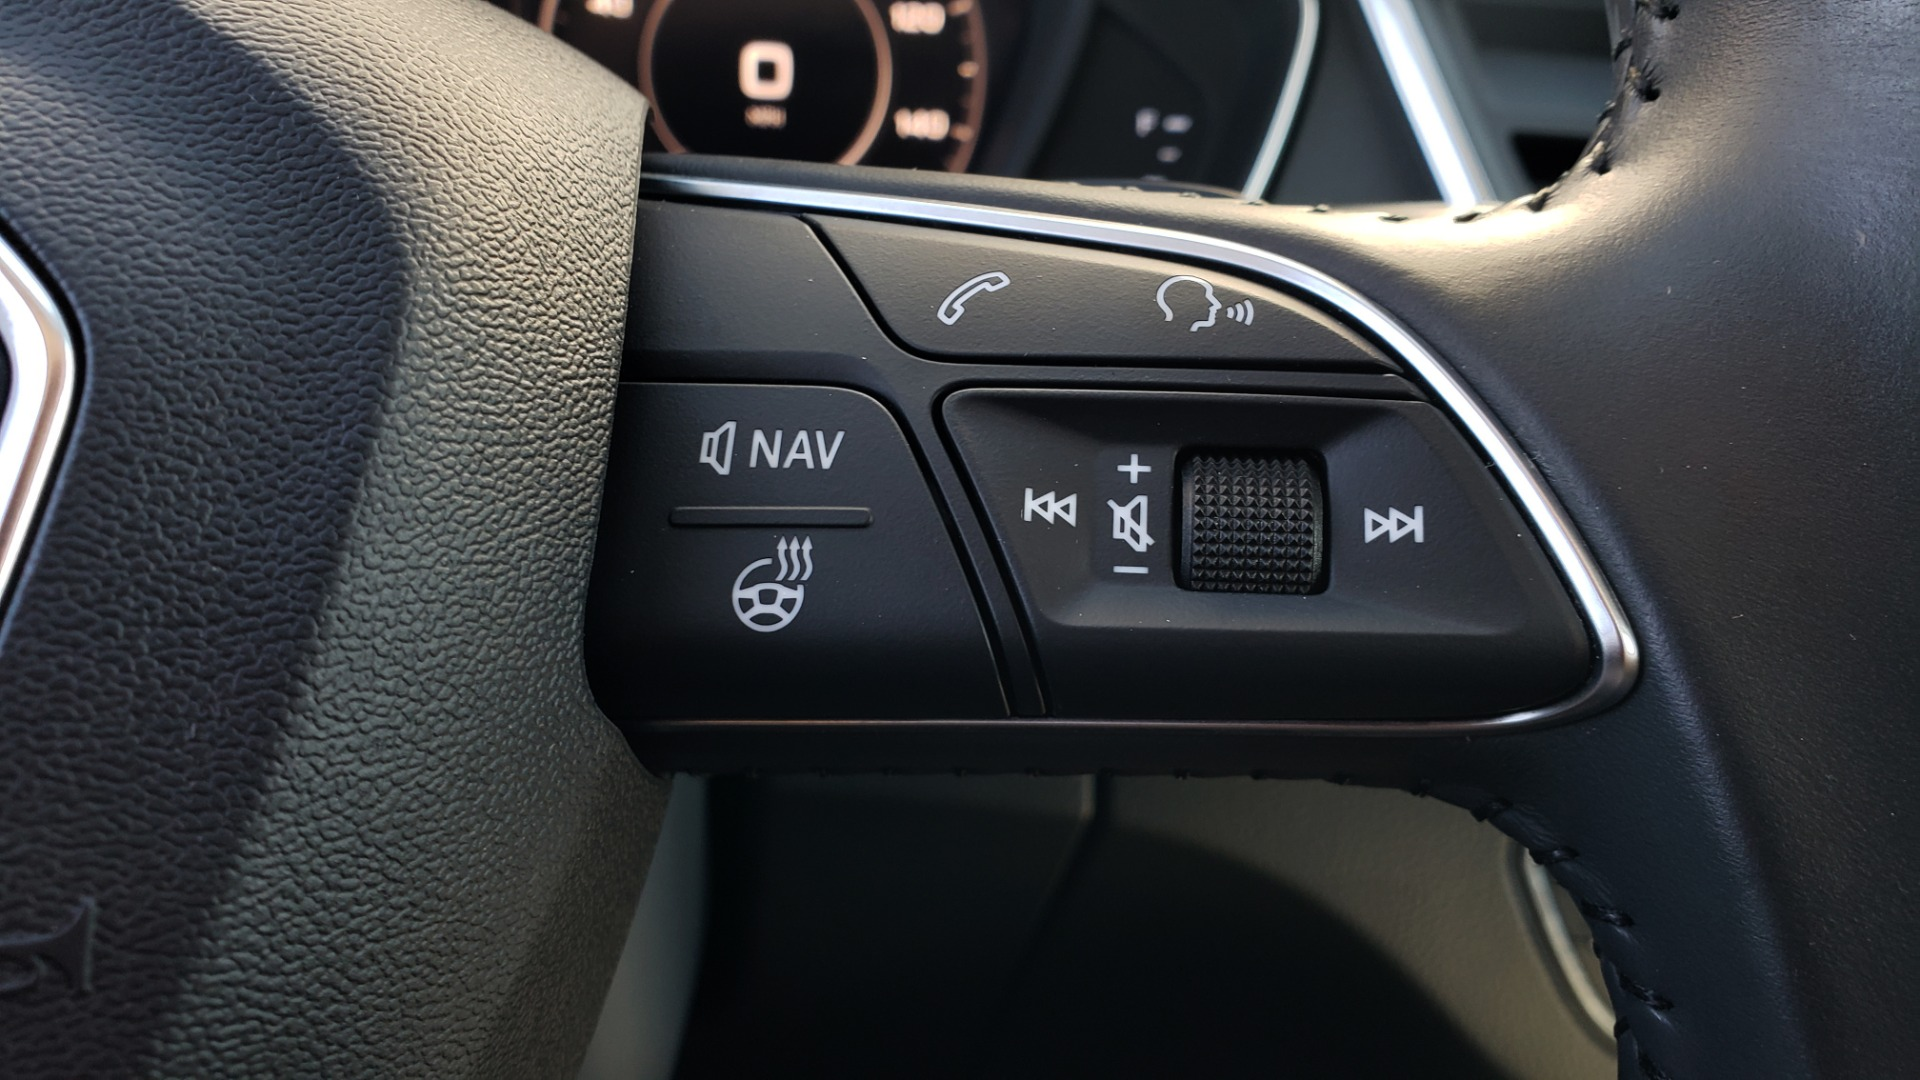 Used 2018 Audi Q5 PREMIUM PLUS / NAV / B&O SND / CLD WTHR / SUNROOF / REARVIEW for sale Sold at Formula Imports in Charlotte NC 28227 45